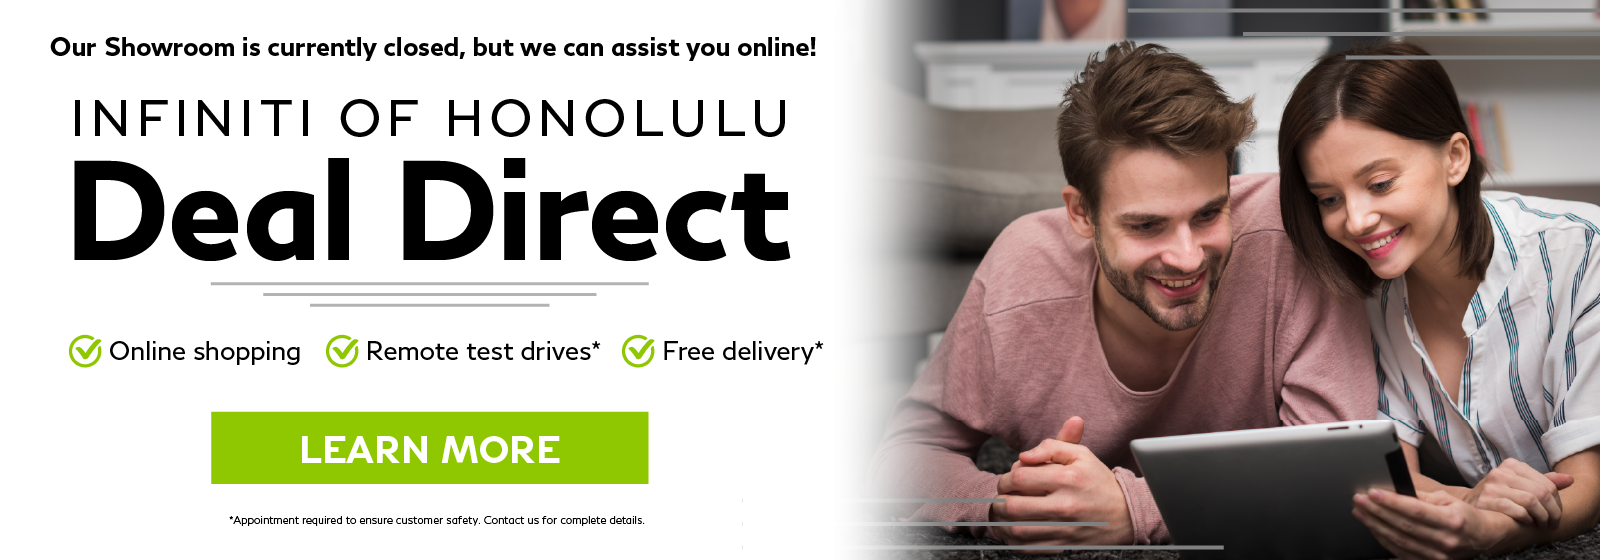 Deal Direct. INFINITI of Honolulu brings the dealership to you! Click to learn more.